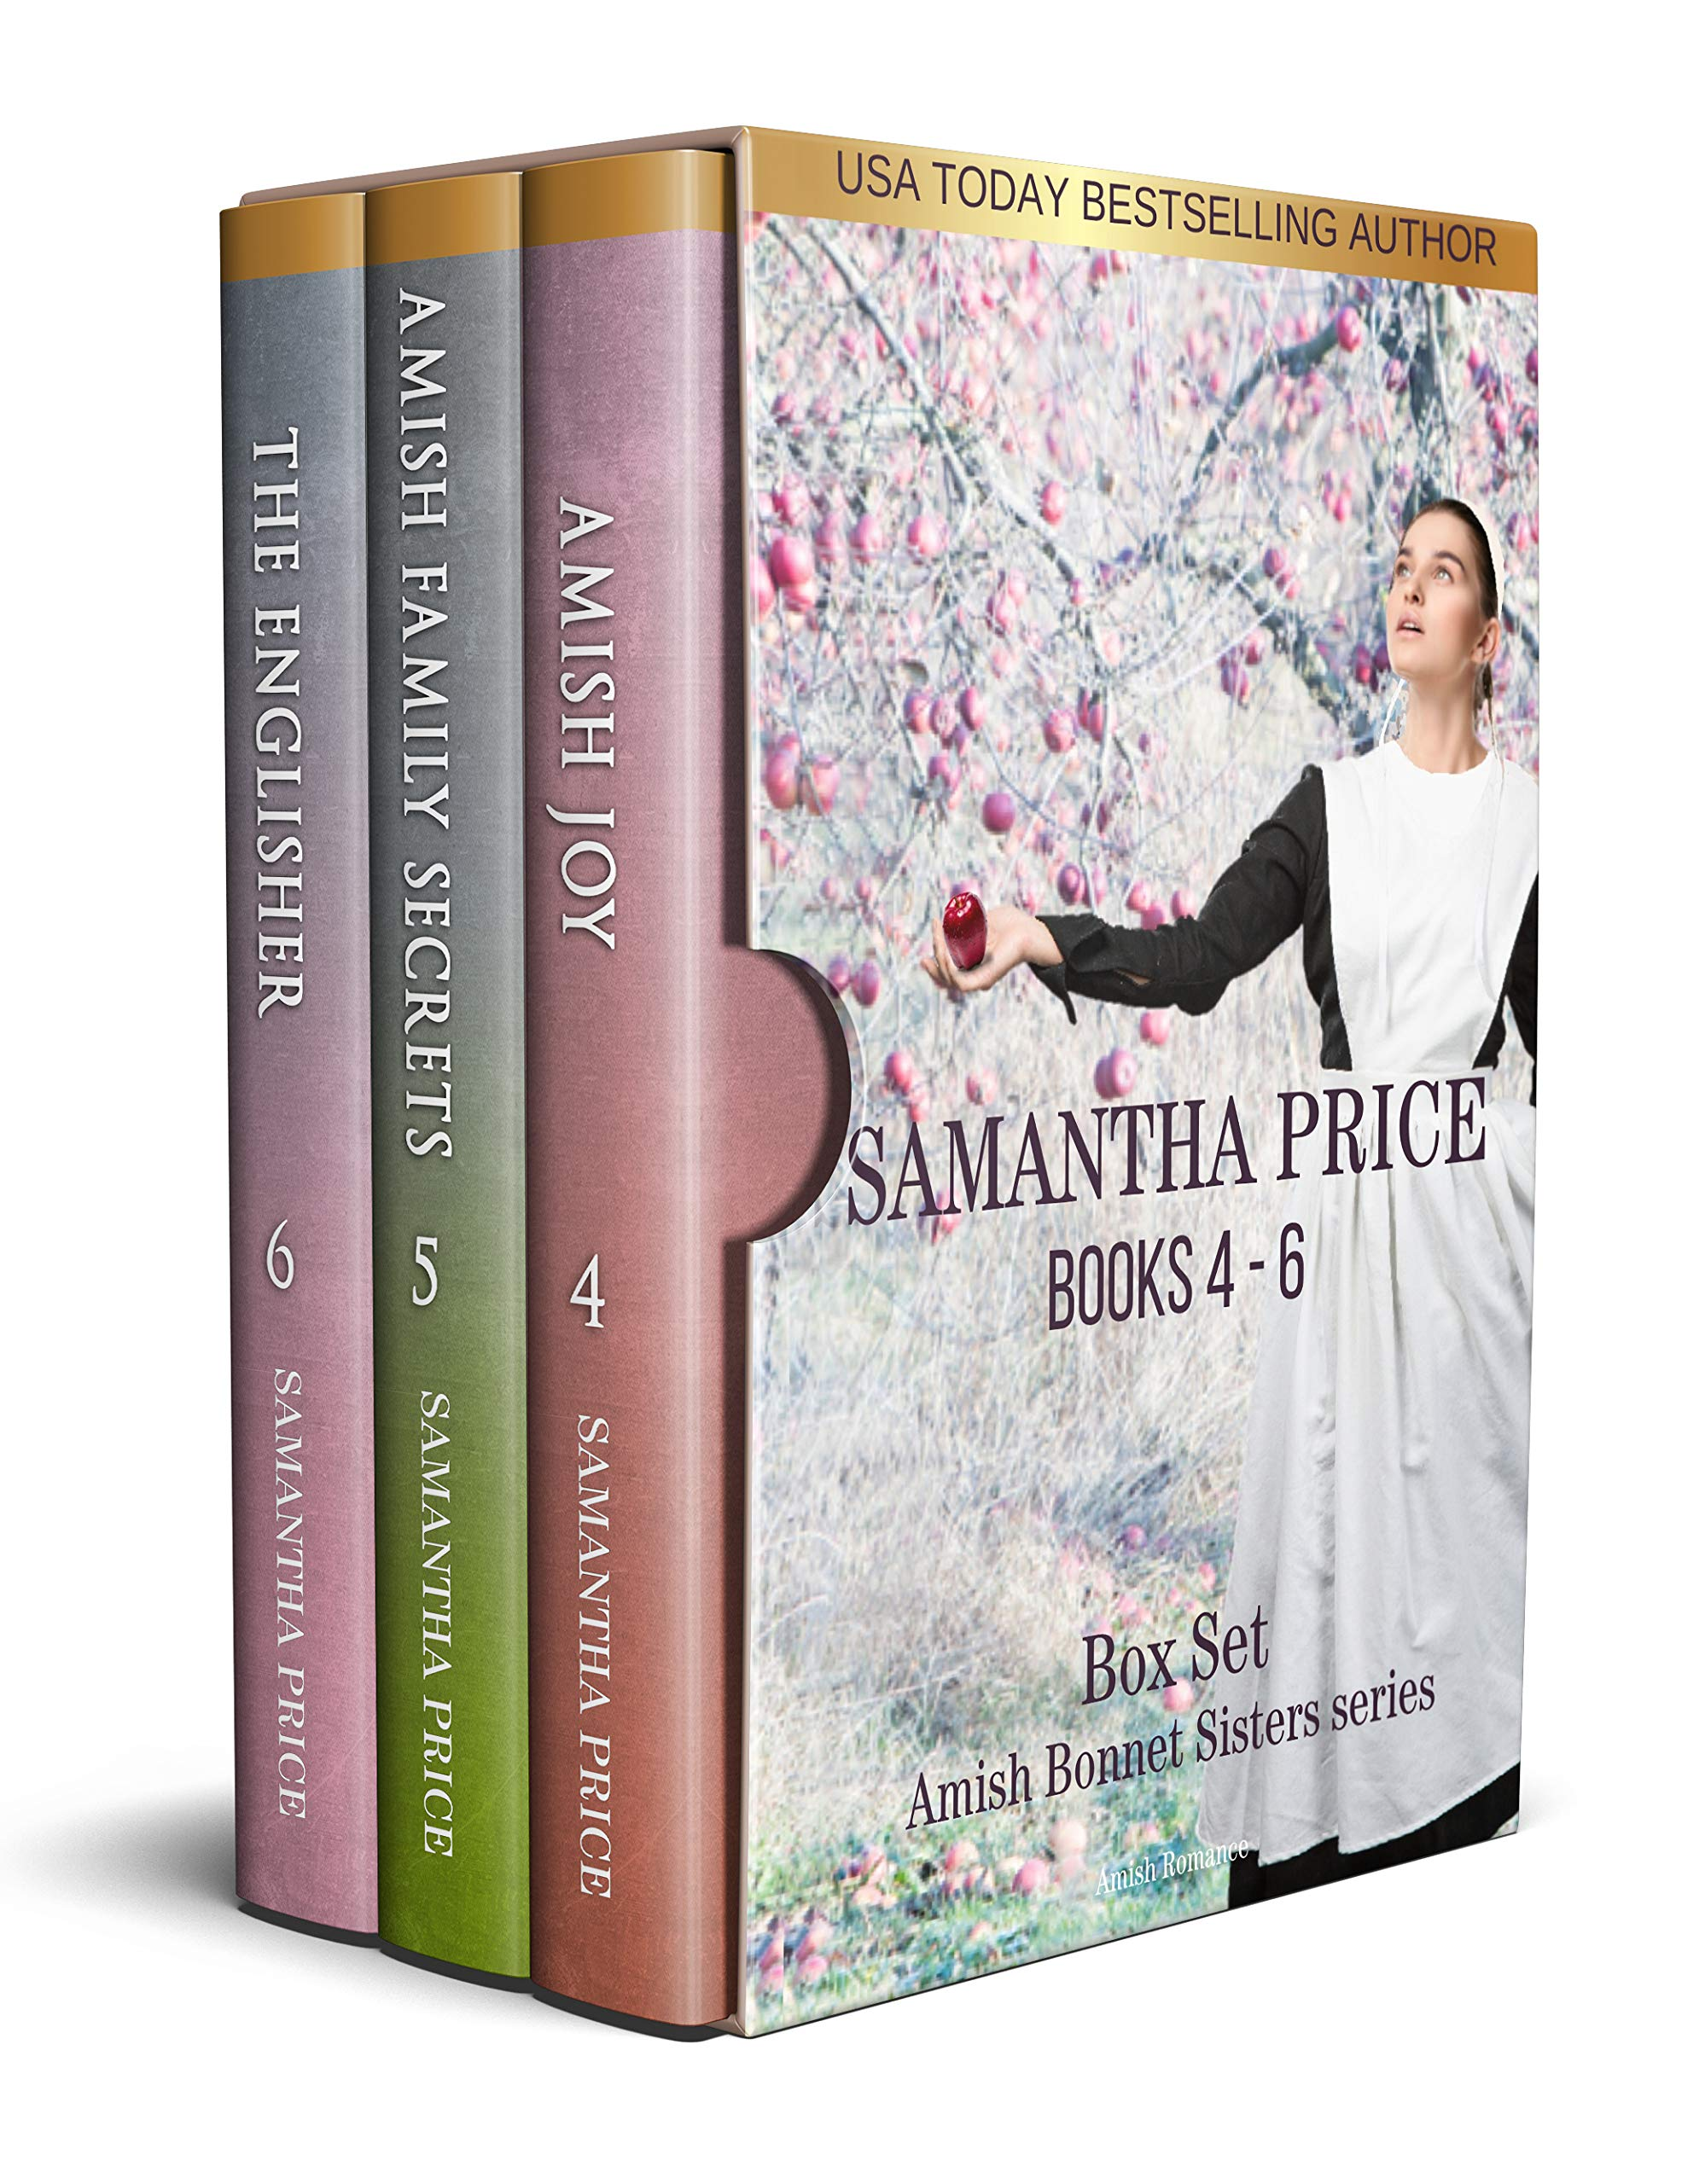 The Amish Bonnet Sisters Boxed Set: Books 4-6 (Amish Joy, Amish Family Secrets, The Englisher): Amish Romance (The Amish Bonnet Sisters Box Set Book 2)